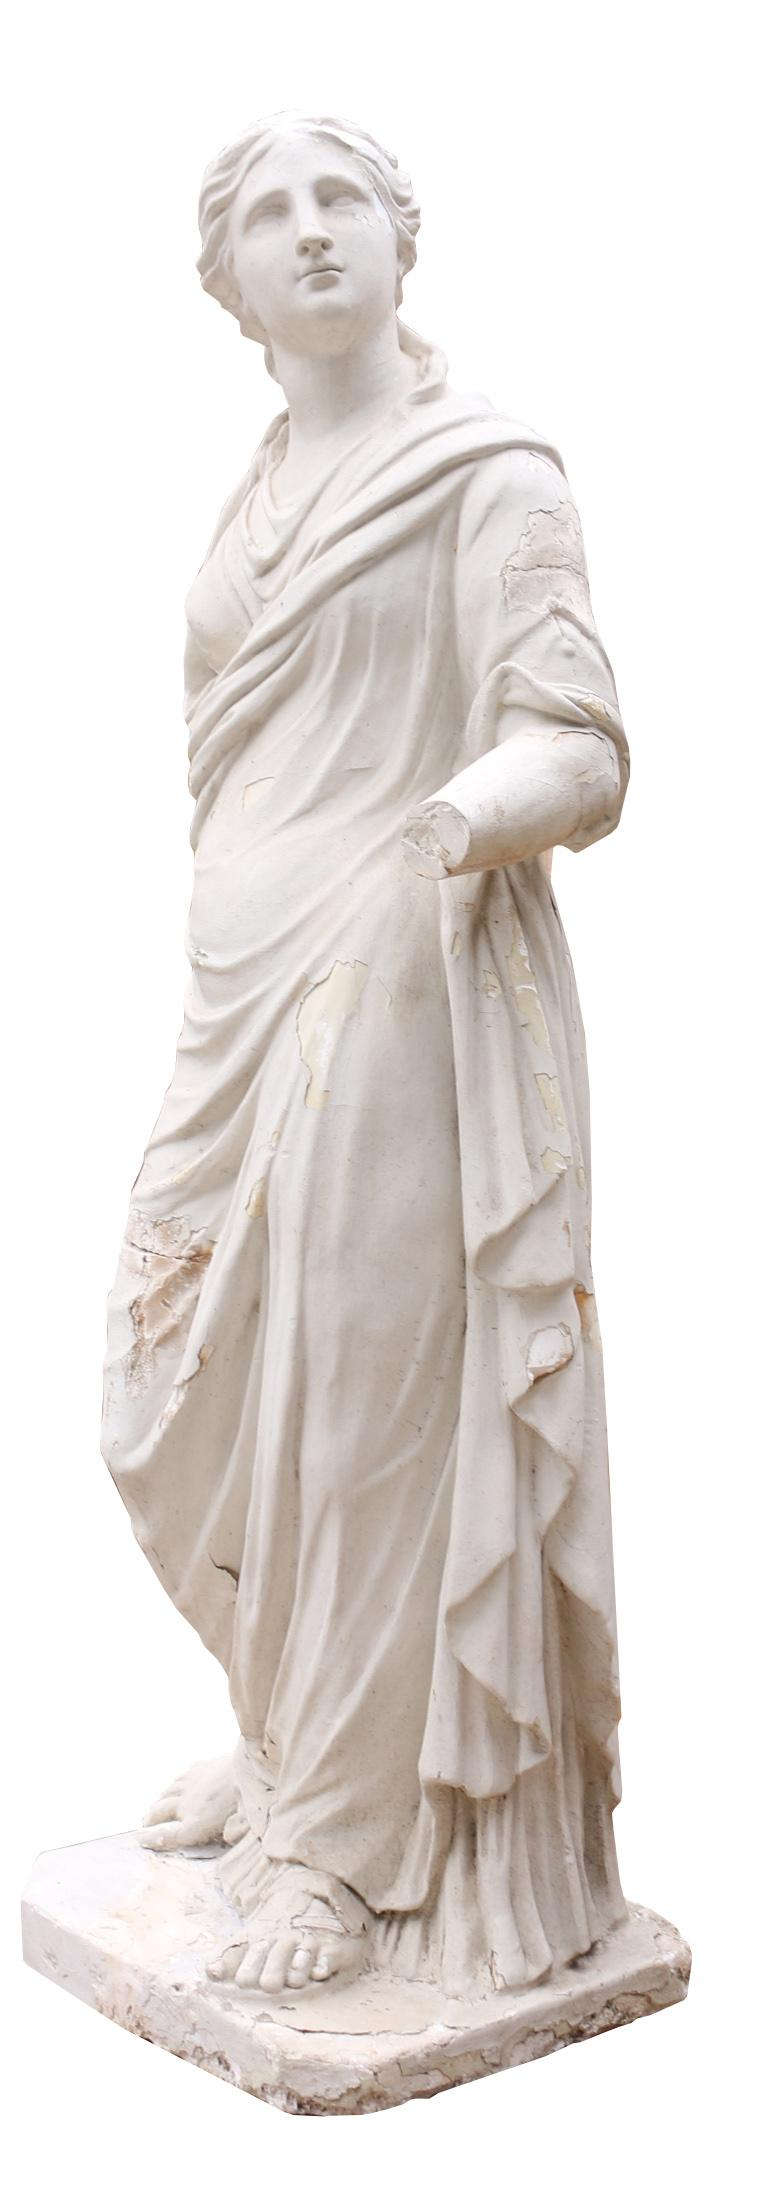 This life size statue dates to the late 19th century and is made from plaster.  This statue is weathered and has various losses and repairs that are shown in the images.  Measures: Height 167 cm Width 65 cm Depth 50 cm  Weight 74 kg.